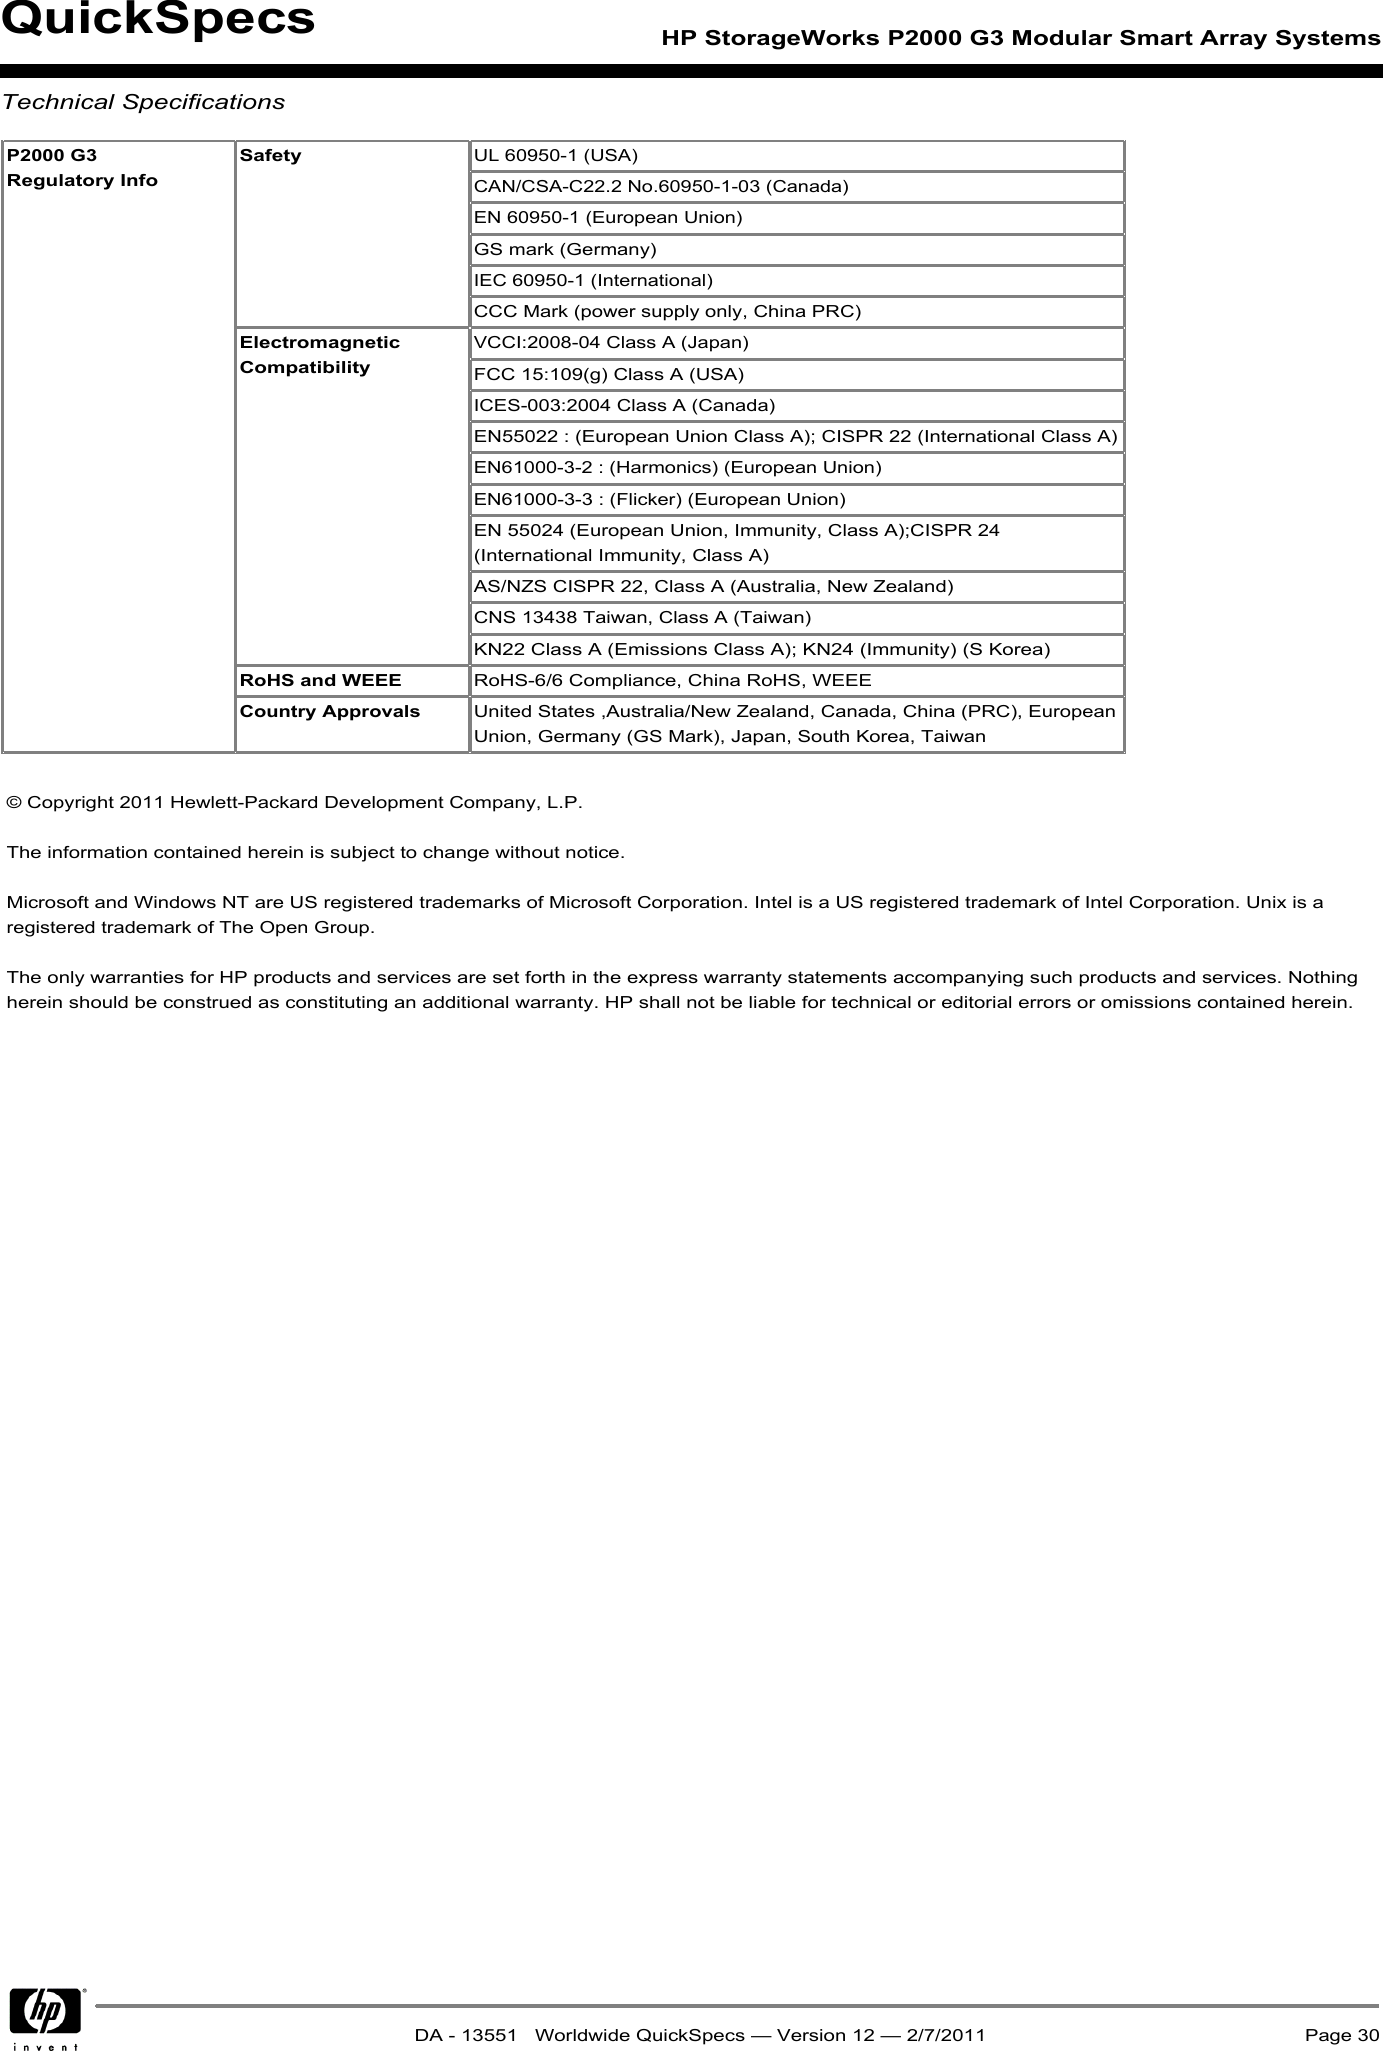 Hp Channel Controller Ap836B Users Manual StorageWorks P2000